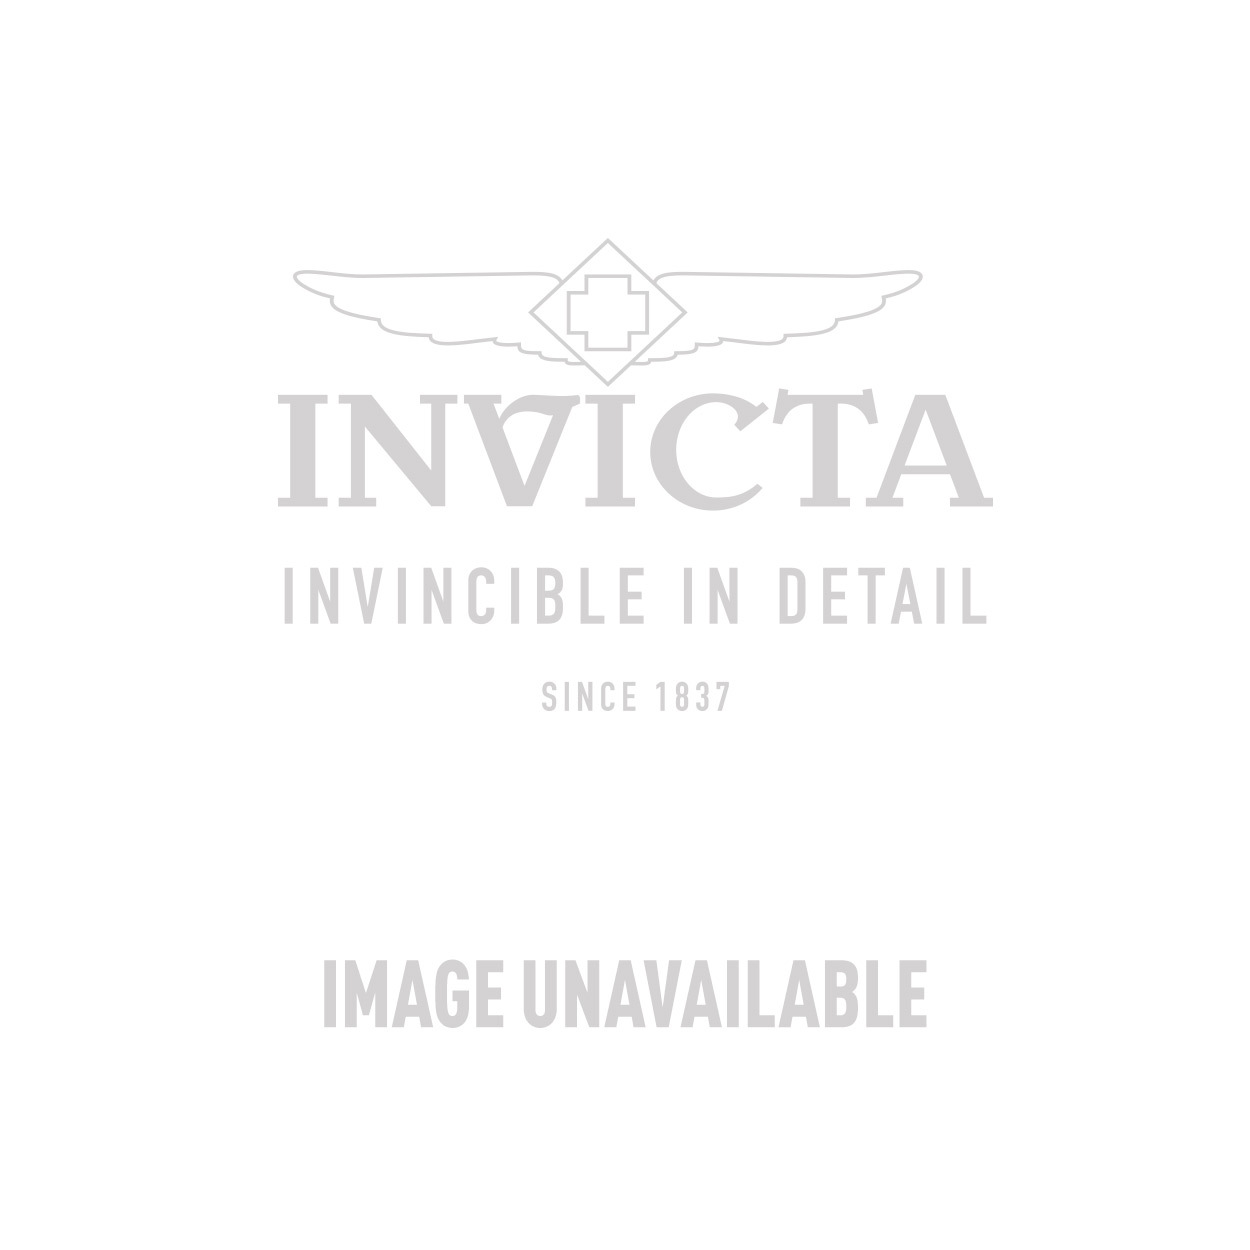 Invicta Coalition Forces Swiss Made Quartz Watch - Gold case with Gold tone Stainless Steel band - Model 17642